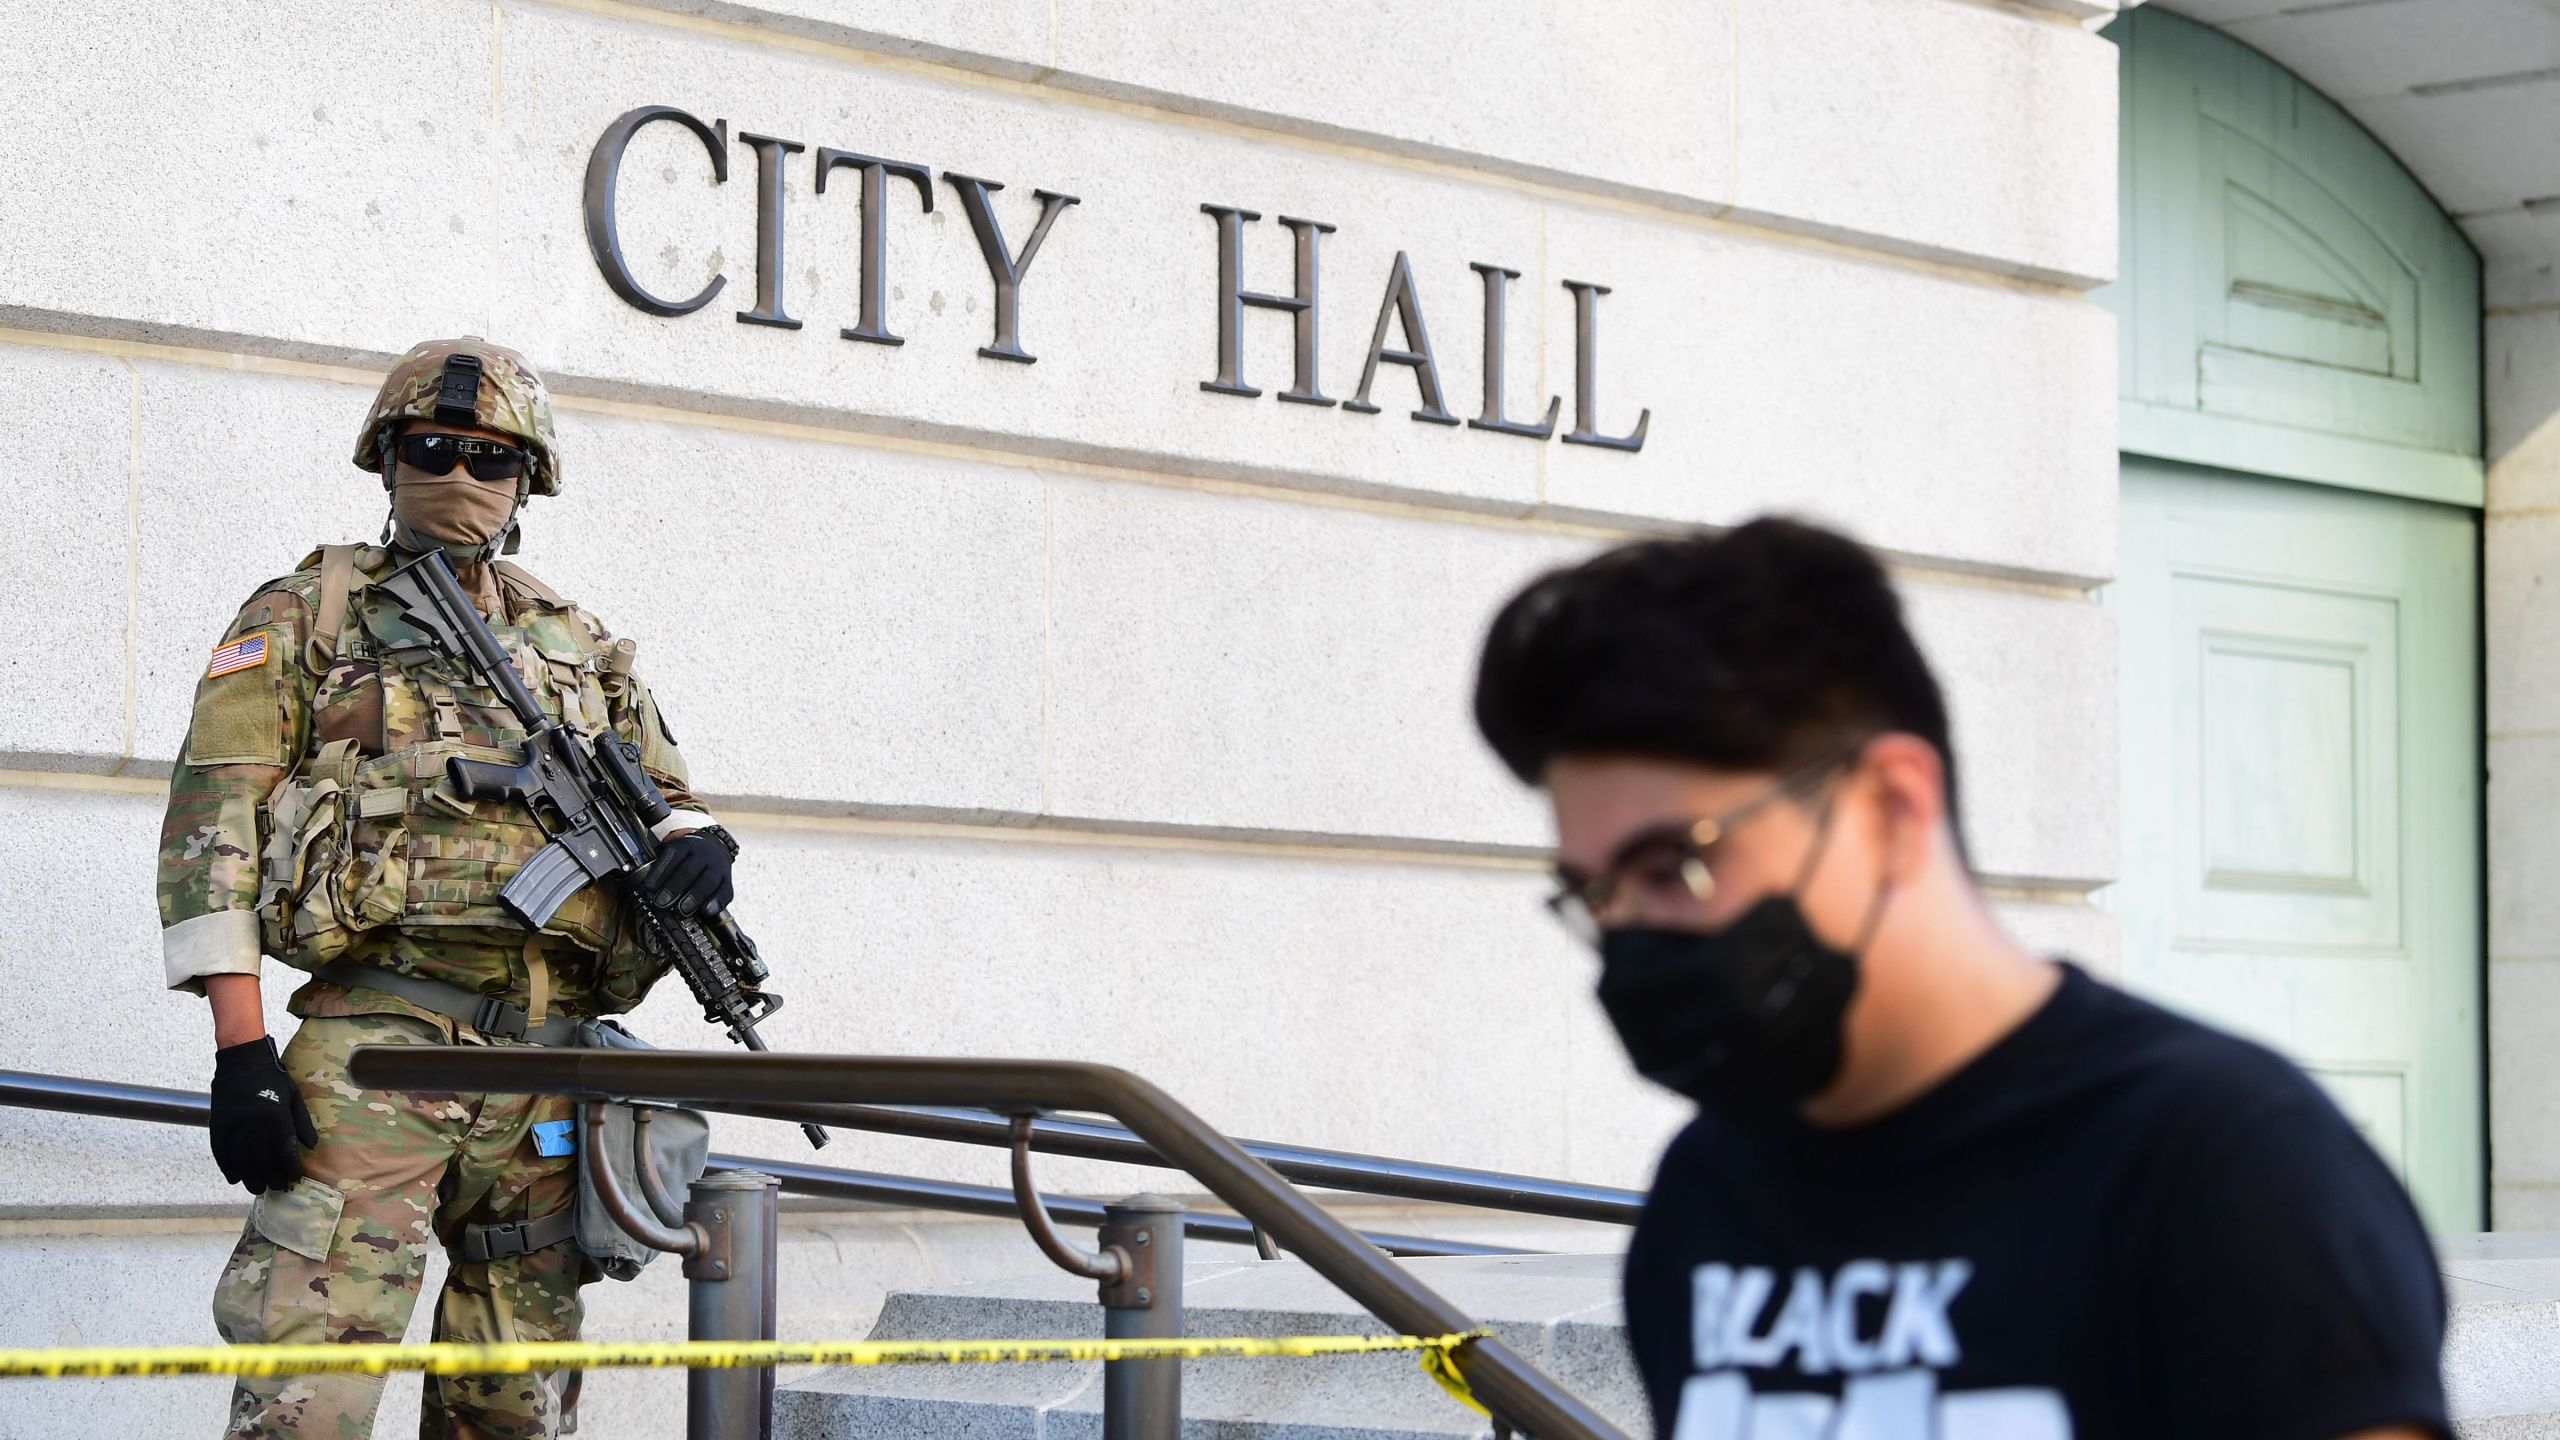 An armed National Guard mans his position in front of Los Angeles City Hall as people protest the death of George Floyd, who died in police custody, on June 3, 2020. (FREDERIC J. BROWN/AFP via Getty Images)